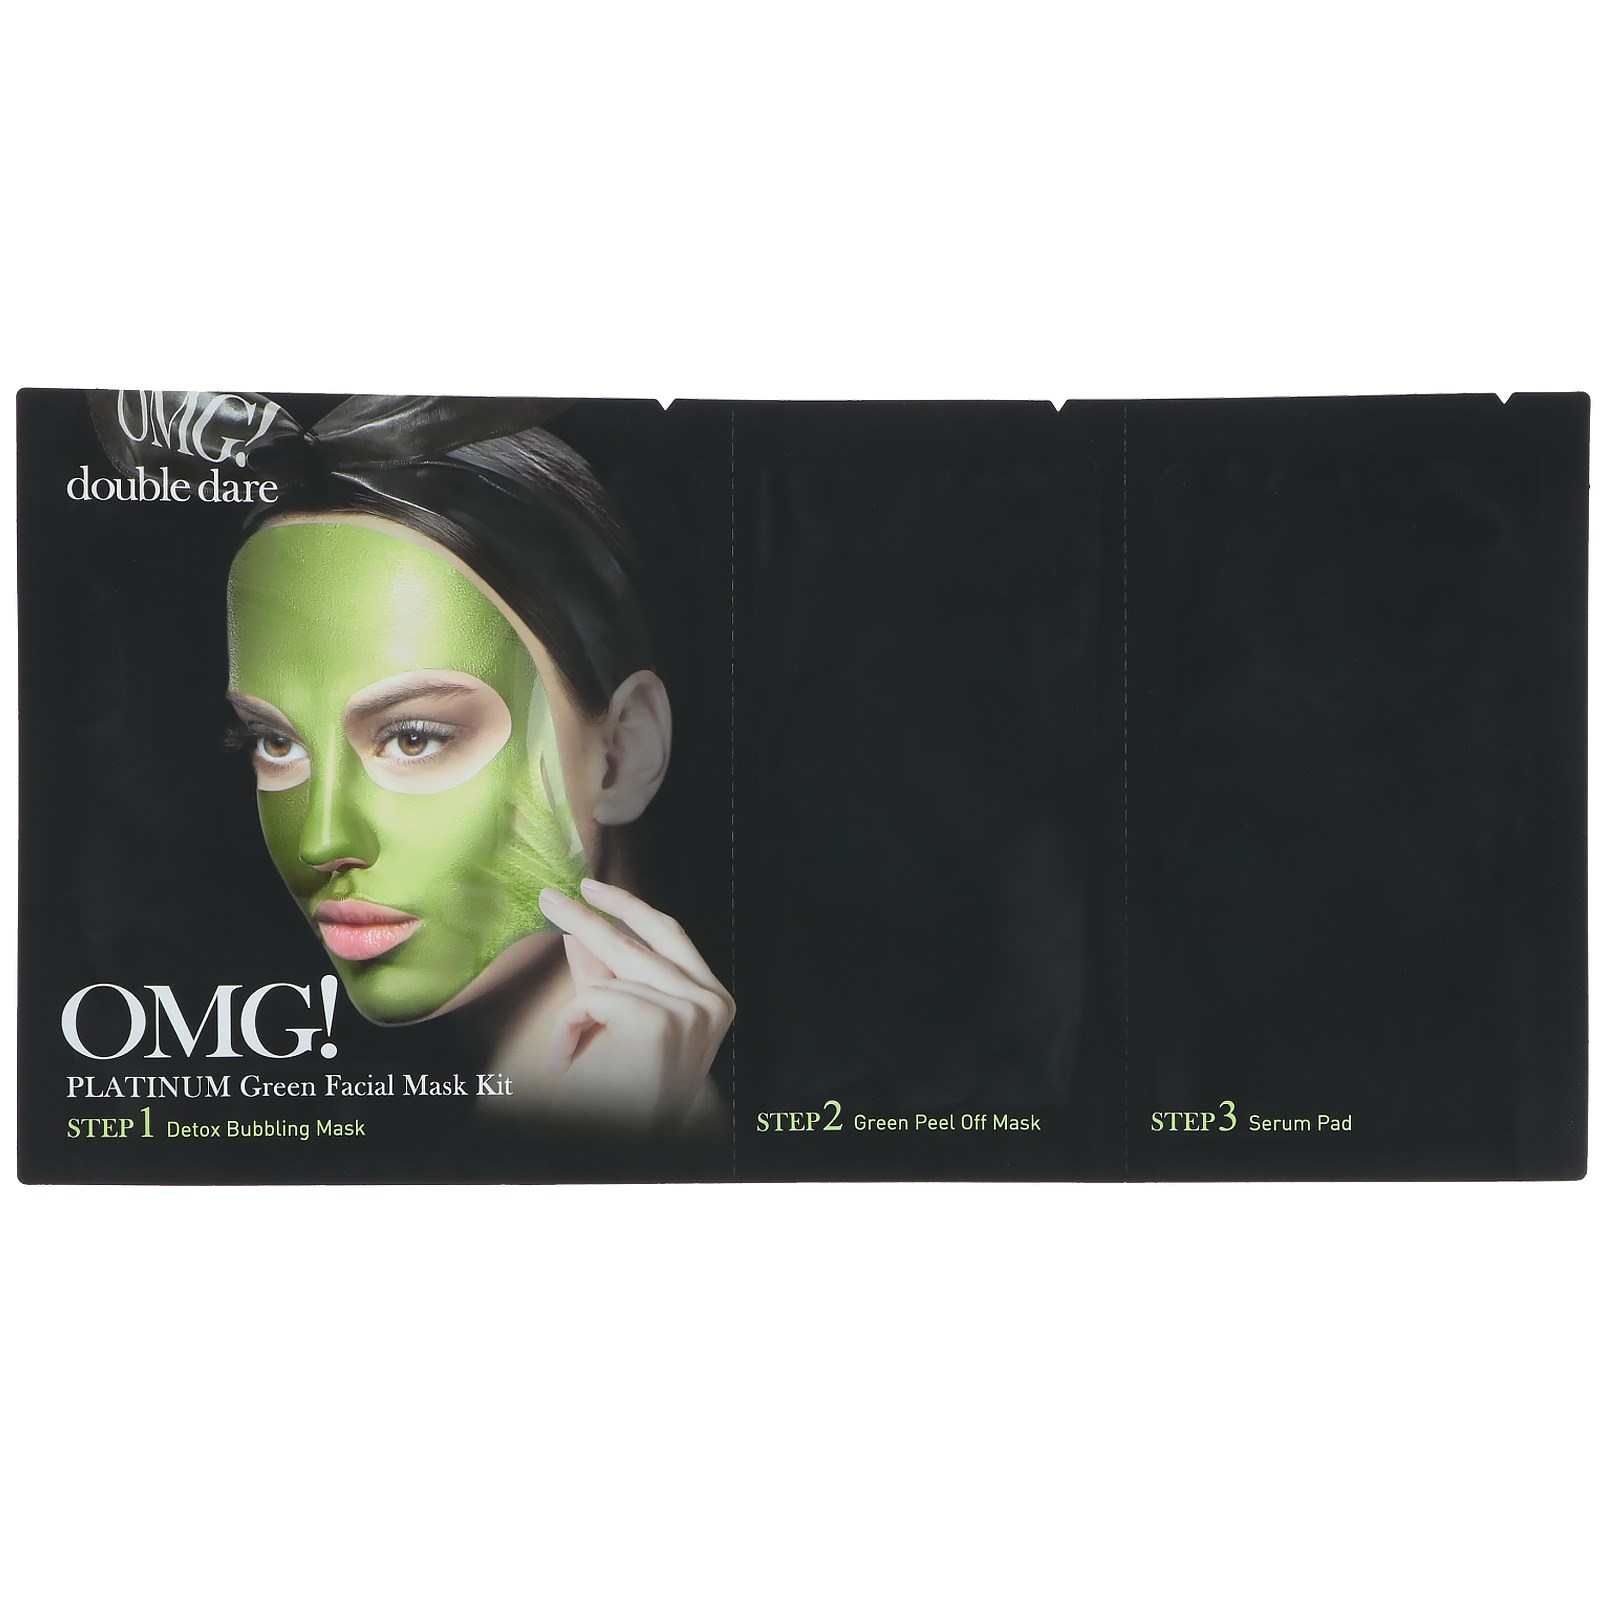 [Double Dare] OMG! Platinum Green Facial Mask Kit Beau Brummell for Men - Detoxifying Charcoal Rich Mud Mask Controls Oil Level